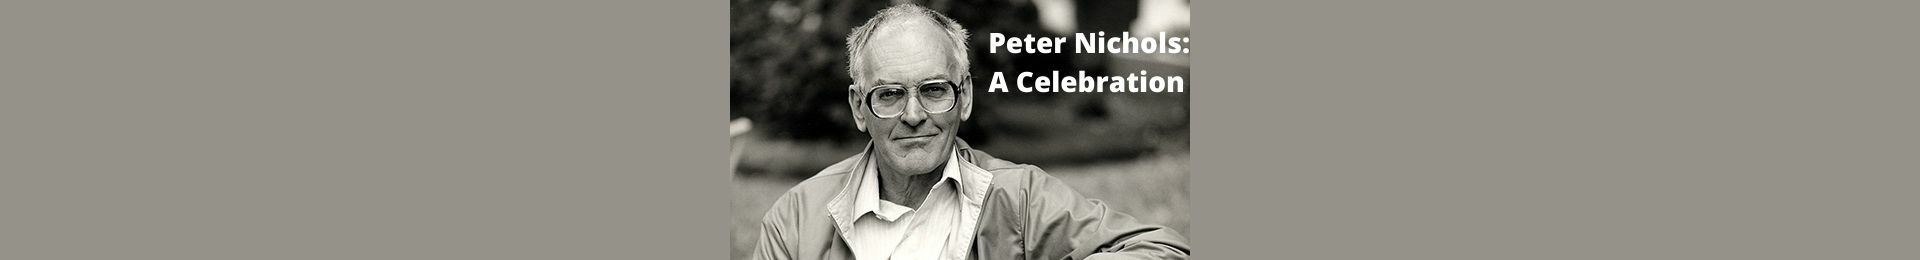 The British Library presents Peter Nichols: A Celebration banner image